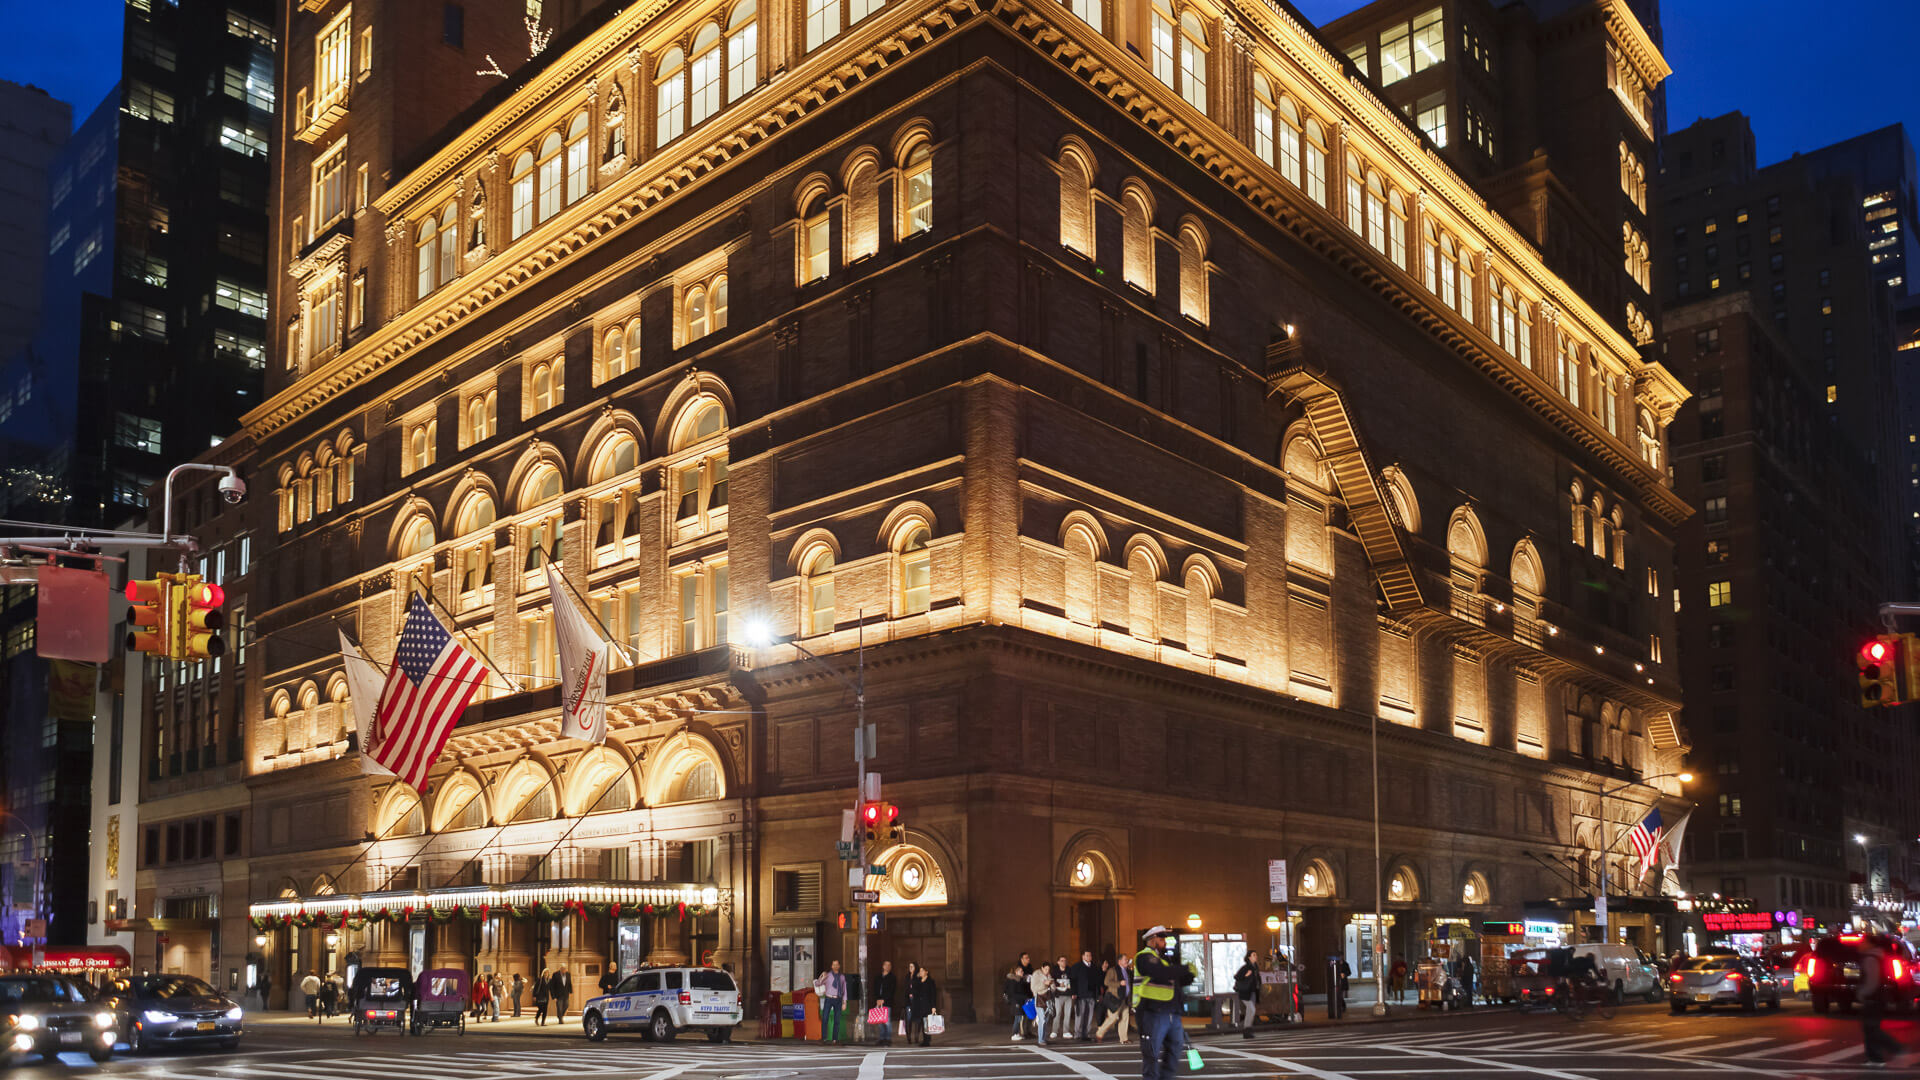 Carnegie Hall in New York City